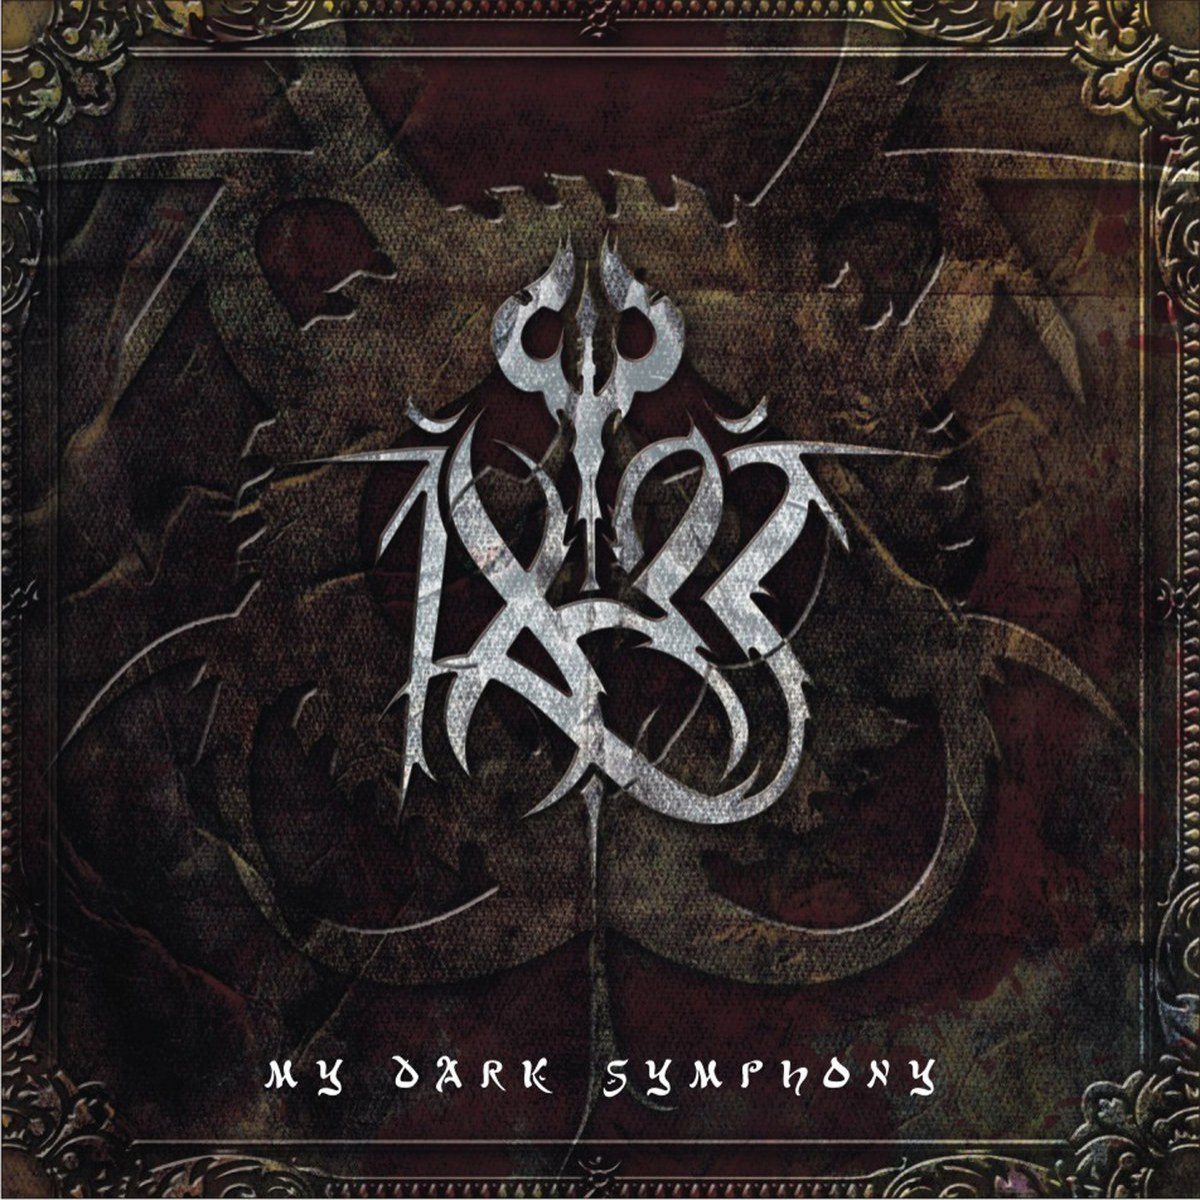 Review for 1833 AD - My Dark Symphony